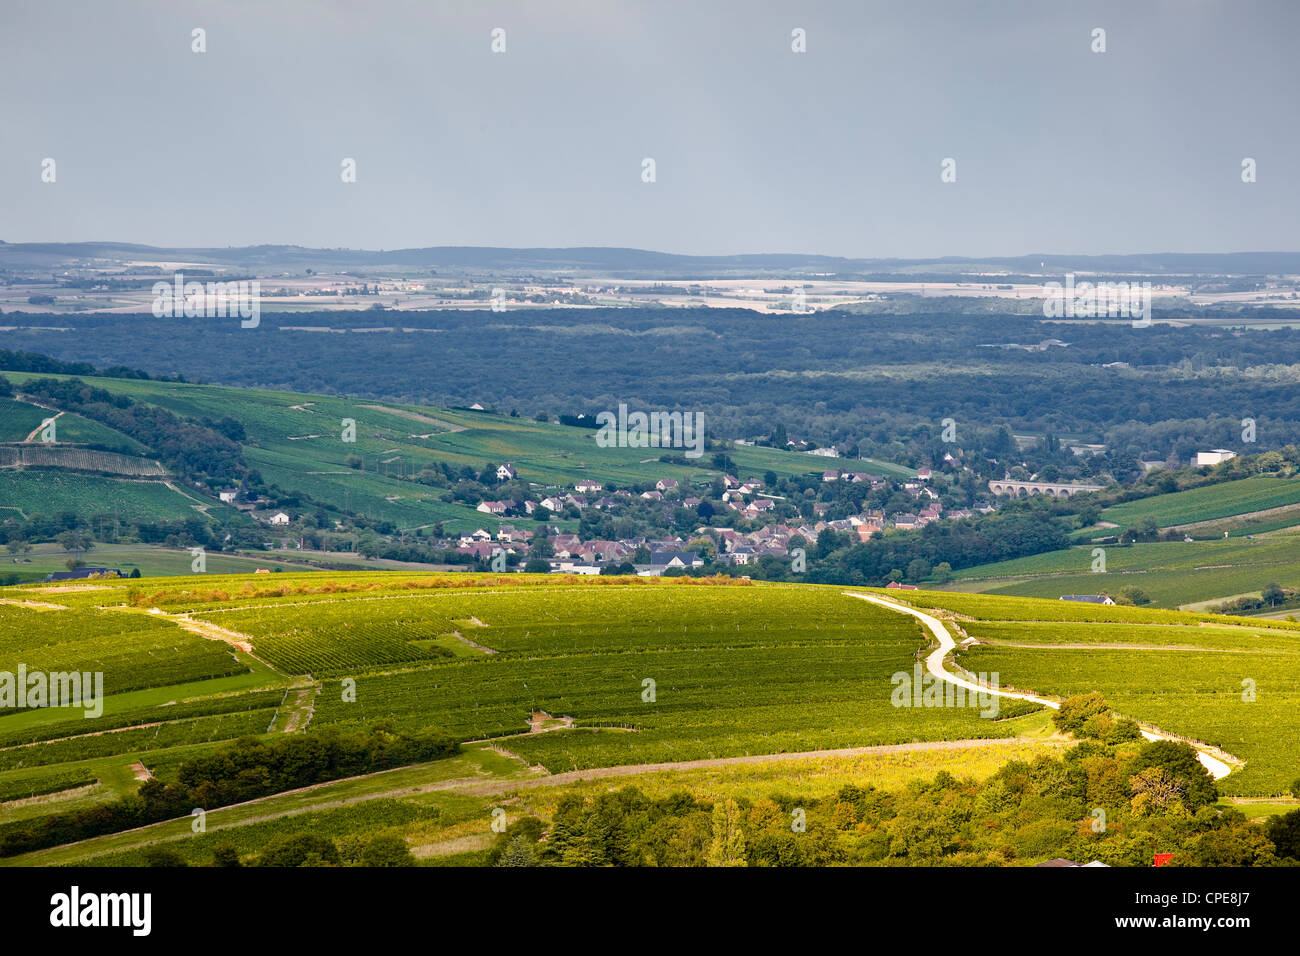 The vineyards of Sancerre under a passing storm at the end of summer, Cher, Centre, France, Europe - Stock Image